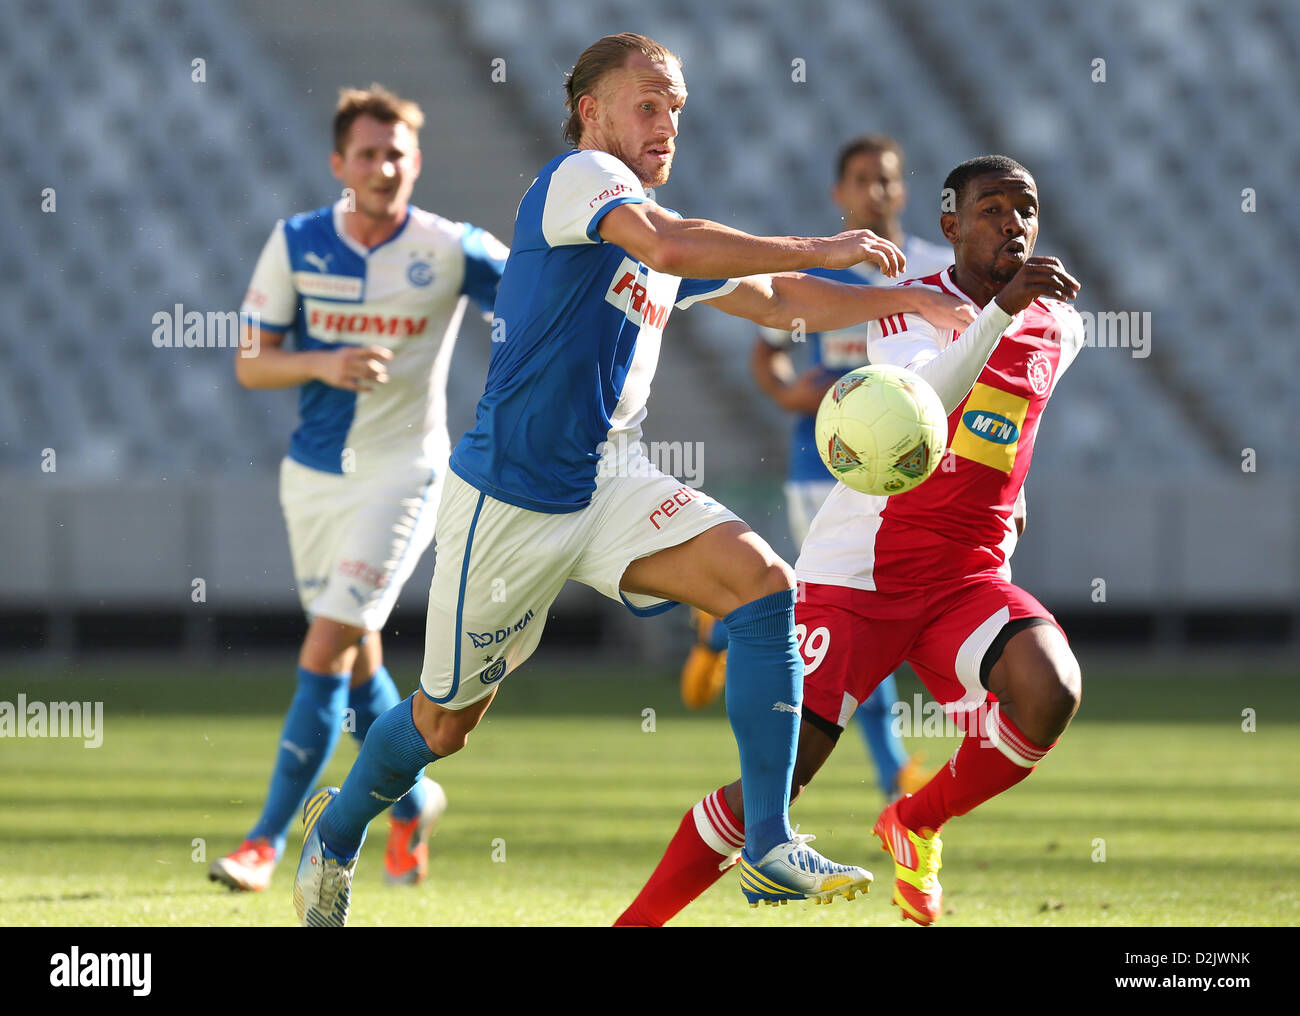 CAPE TOWN, South Africa - Saturday 26 January 2013, Michael Lang of Grasshopper Club Zurich and Abia Nale of Ajax - Stock Image